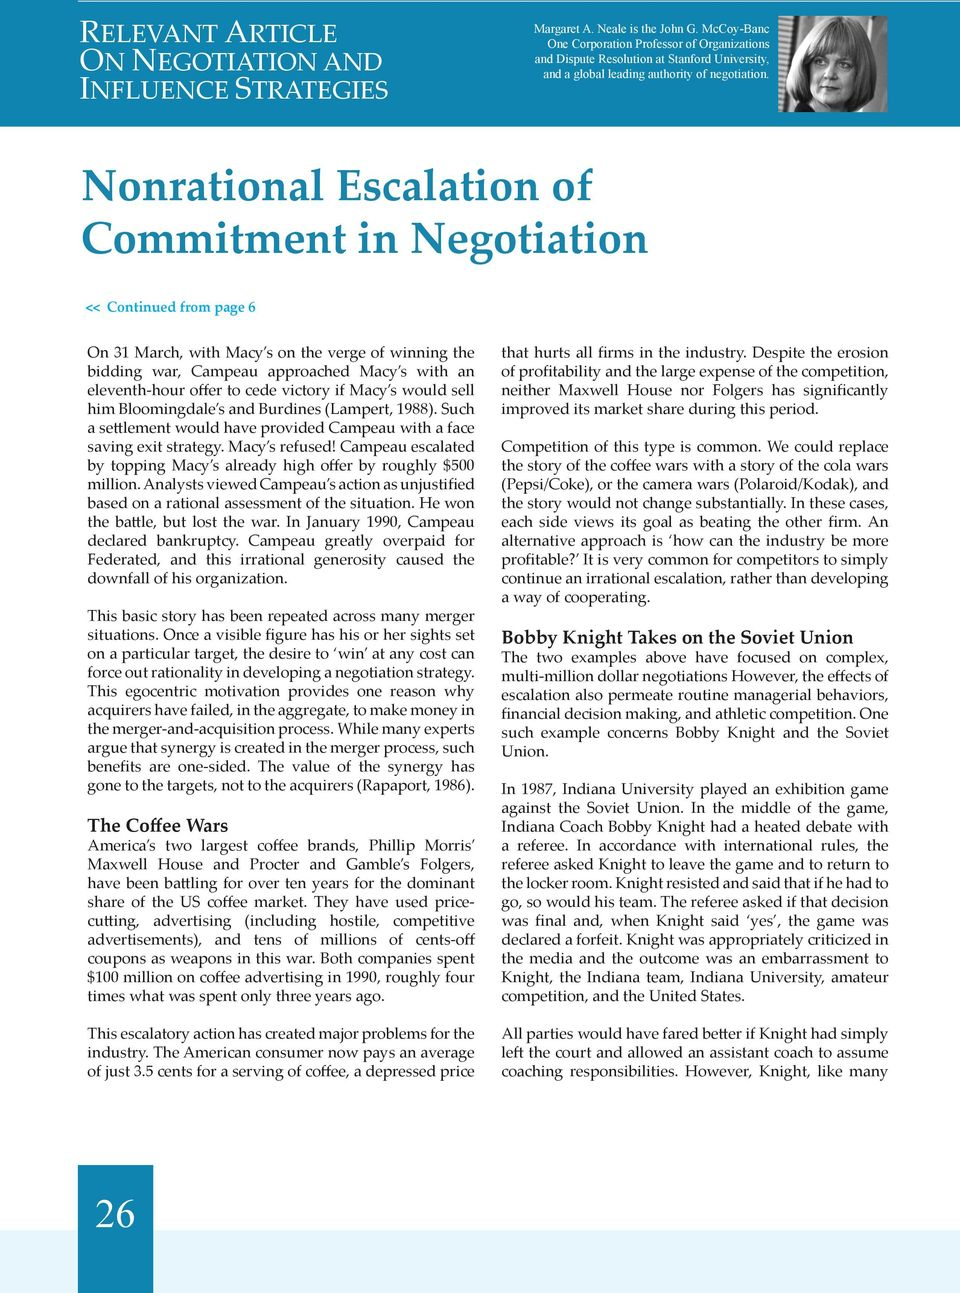 nonrational escalation of commitment essay Reasons for becoming non-rational escalation commitment escalation is defined as persistence with a decision well beyond the point where any sensible person would give up one theory of escalation is that decision-makers become emotionally attached to their investment.